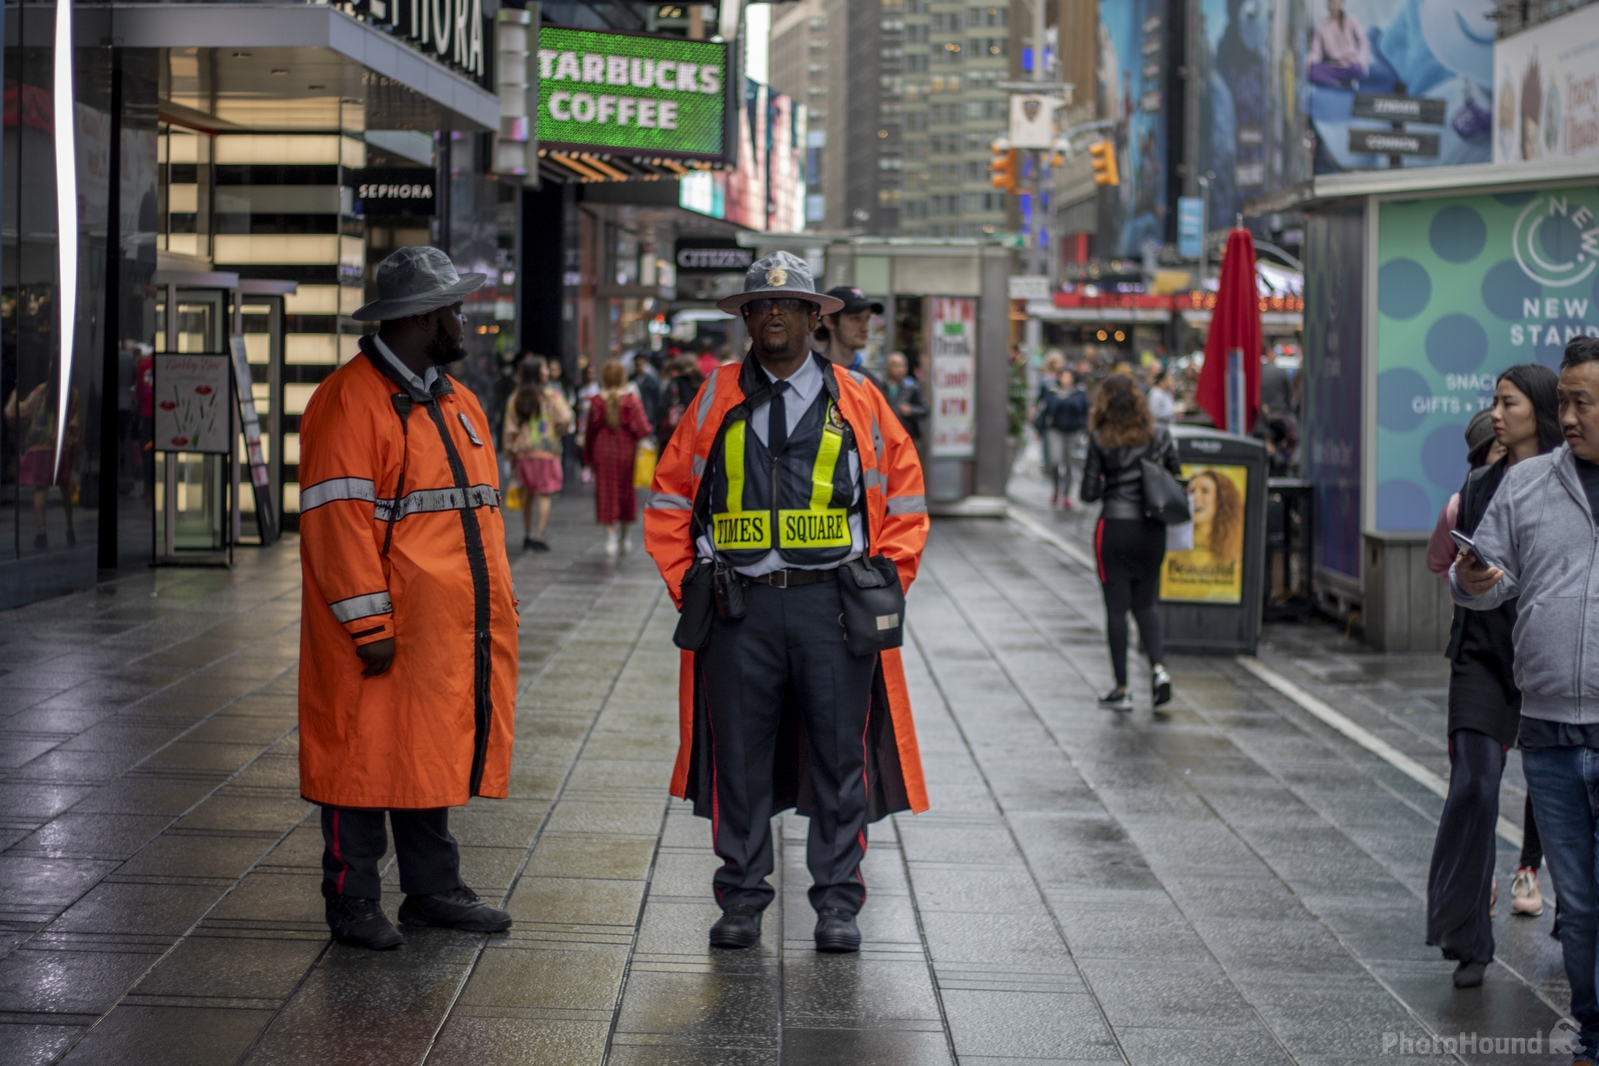 Times Square - Security